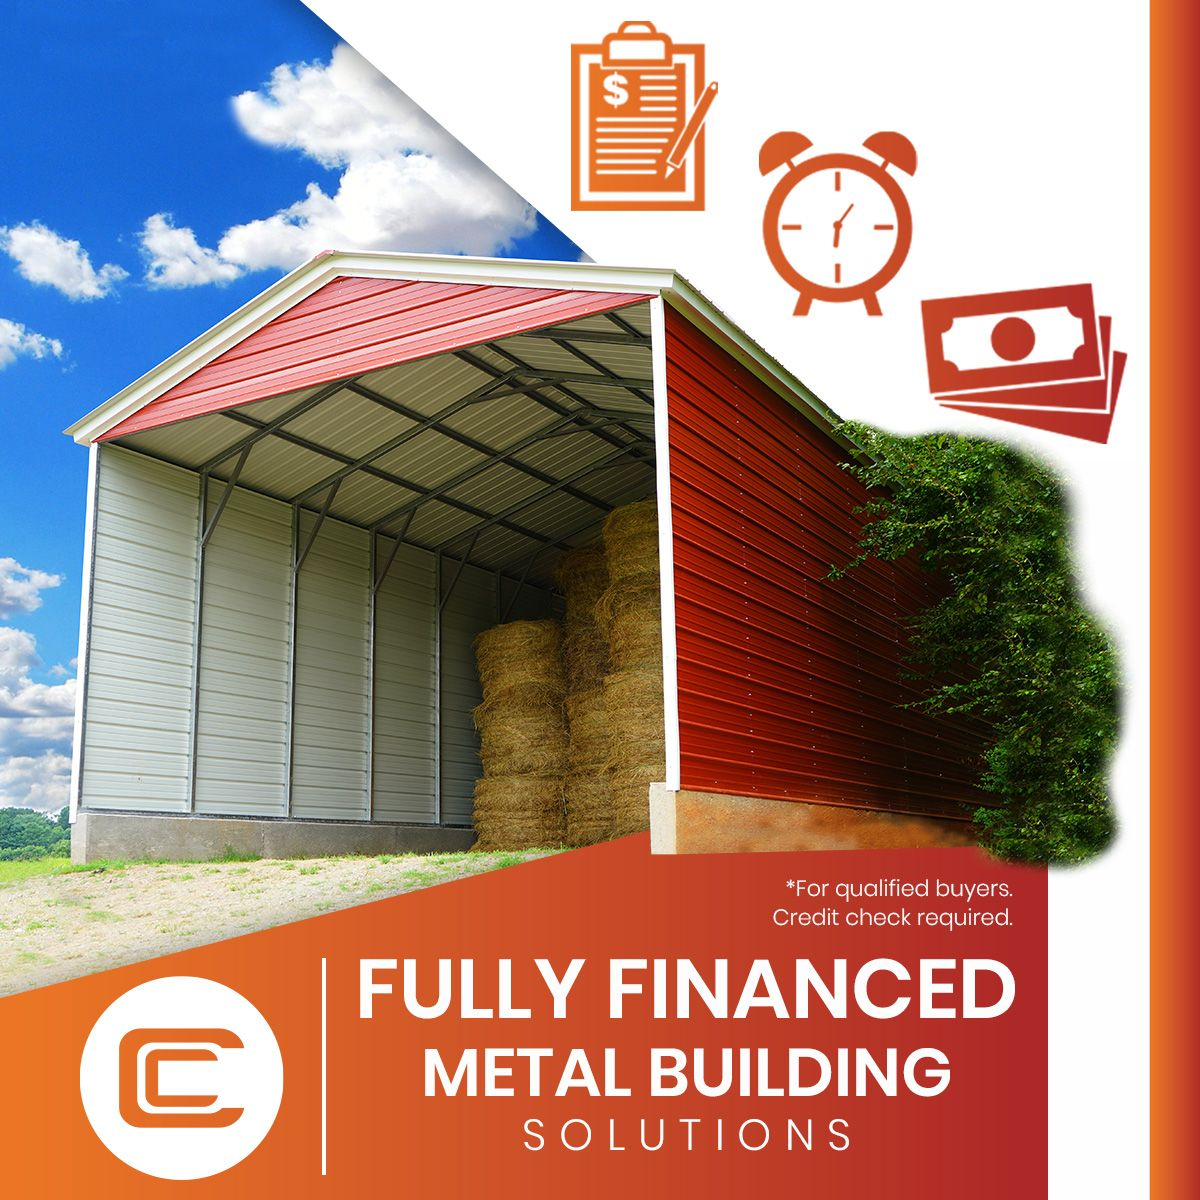 Fully Financed Metal Buildings from Carport Central in